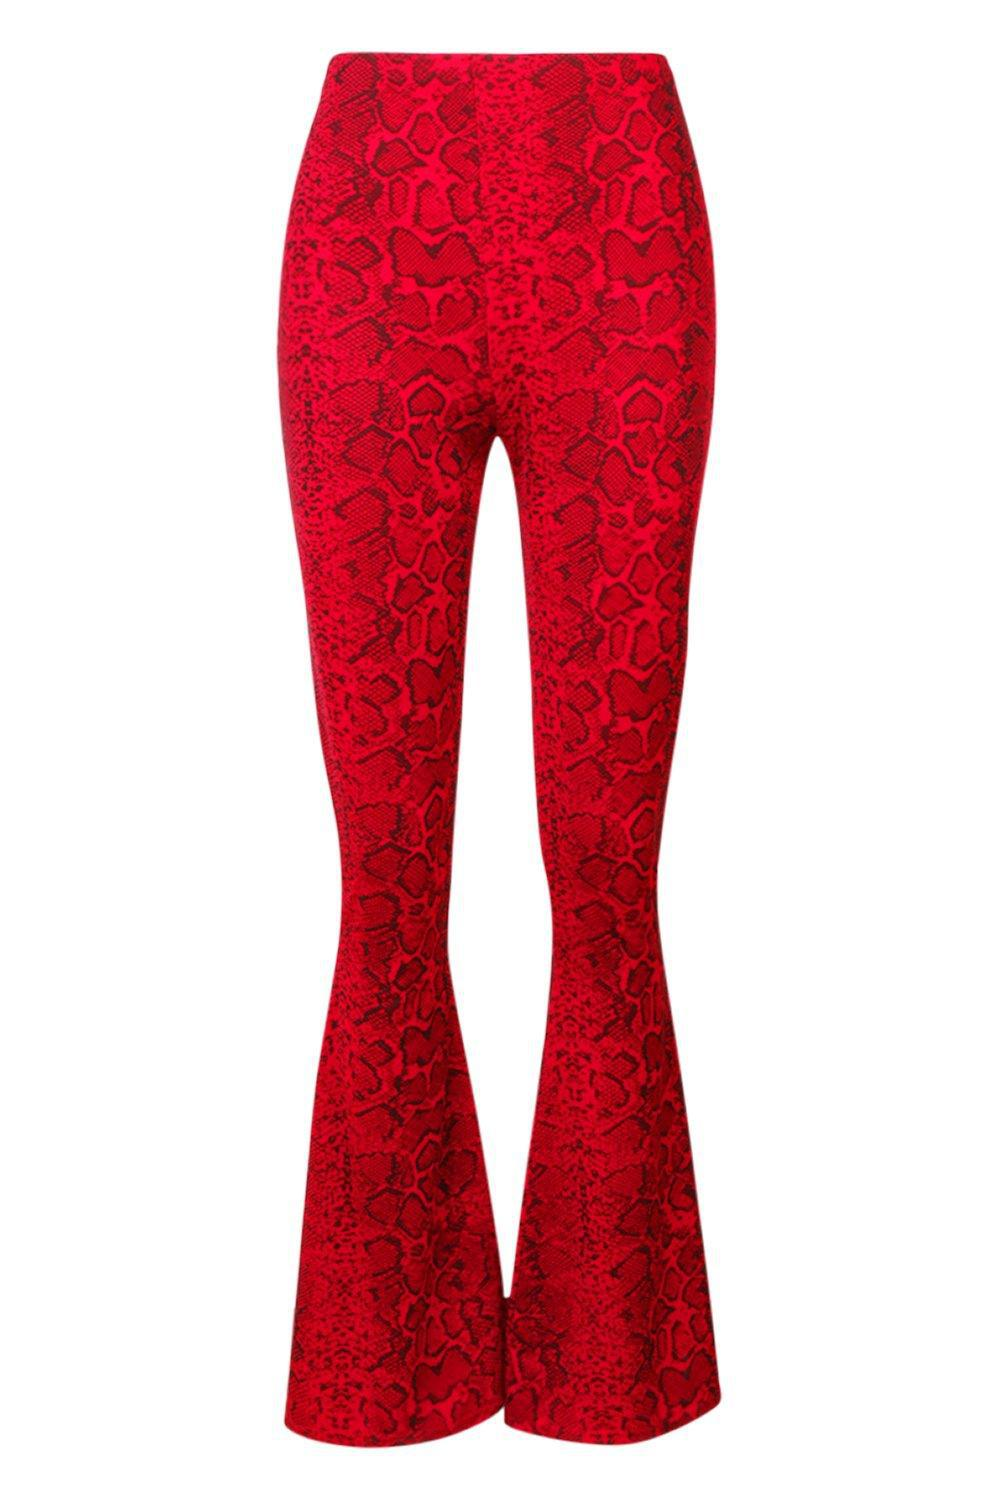 fefb1df51dcef Boohoo Snake Print Flare Trouser in Red - Lyst